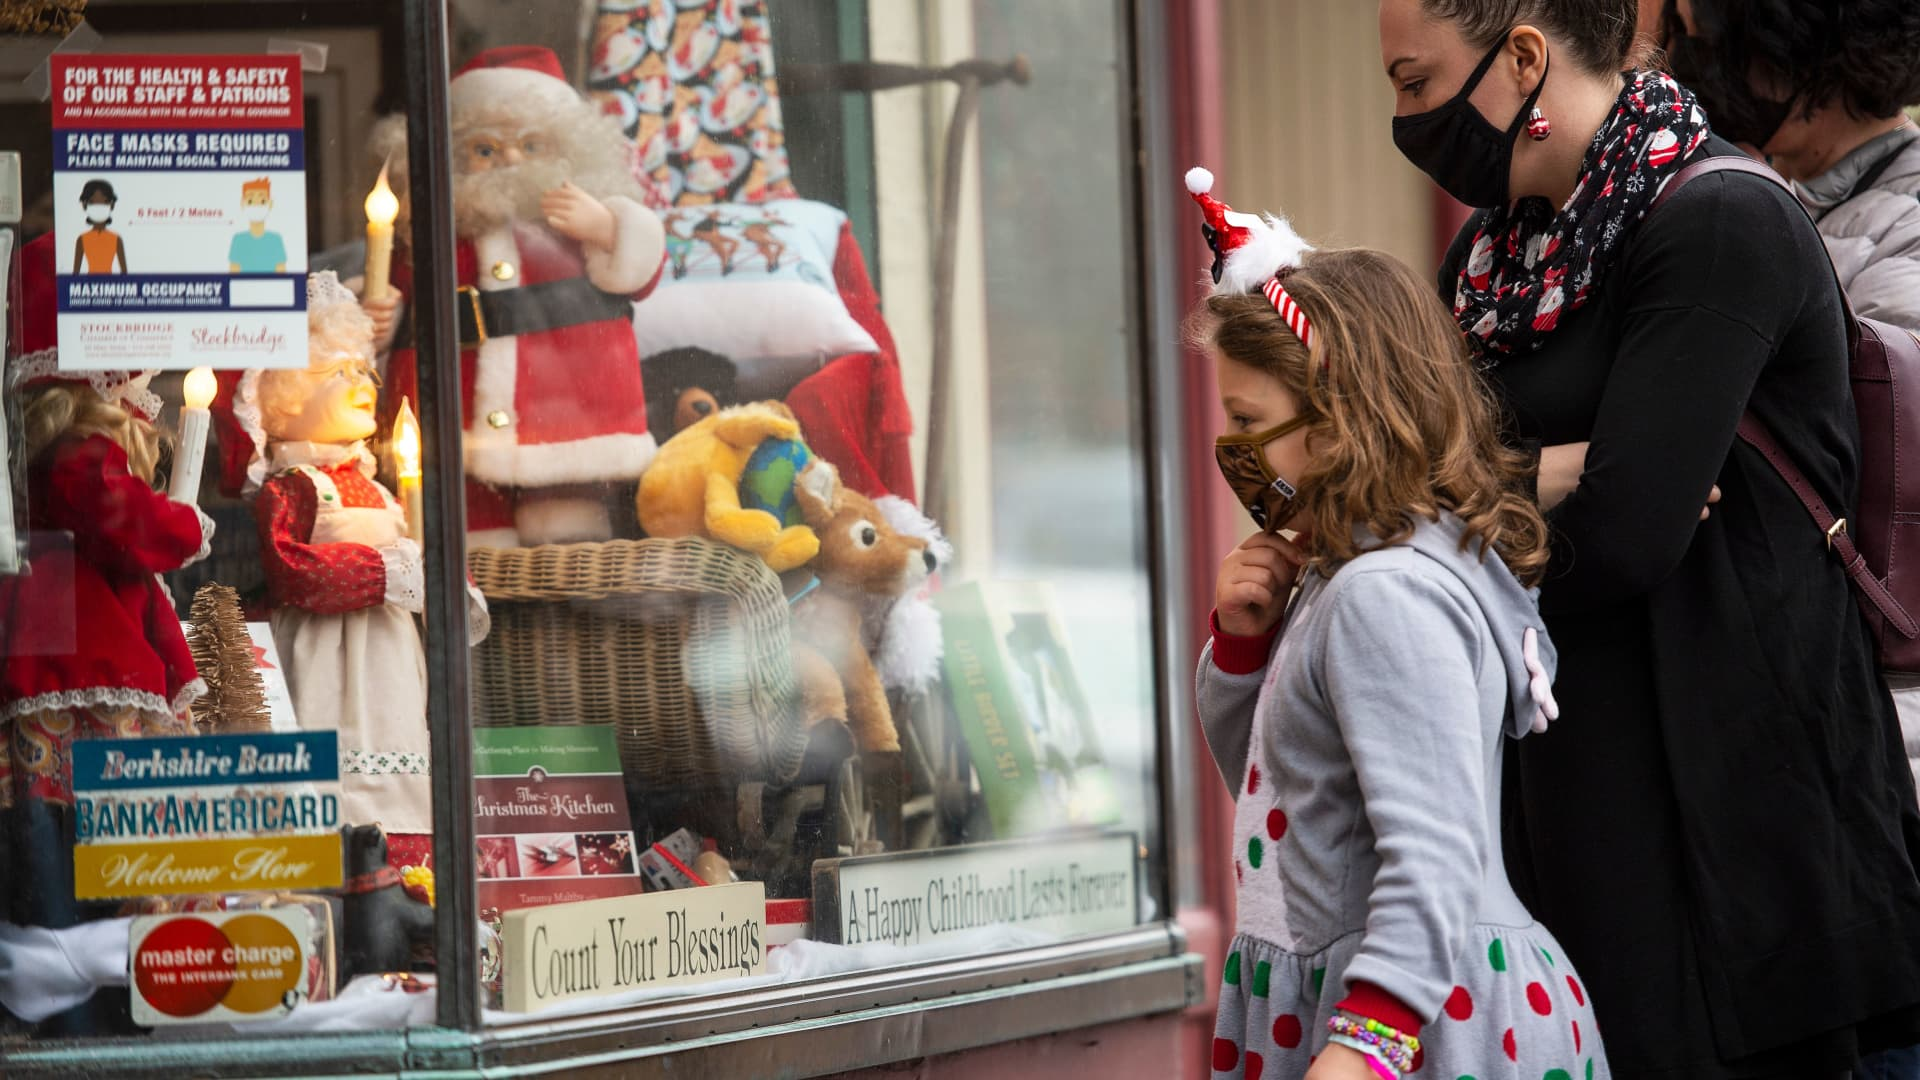 Window shoppers view holiday decorations at the Williams & Sons Country Store in Stockbridge, Massachusetts, on Dec. 13, 2020.